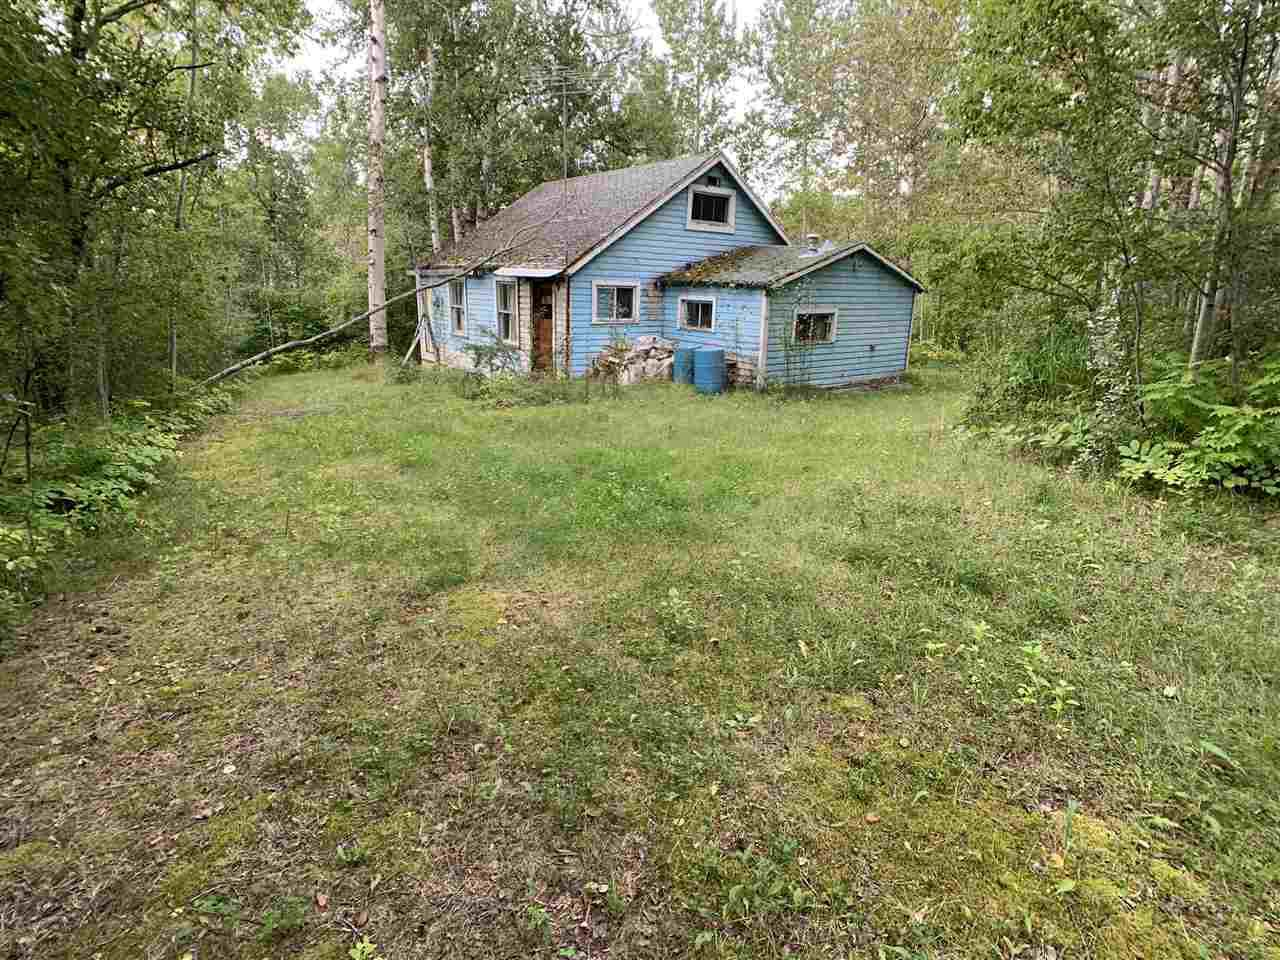 Main Photo: 4 SECOND Avenue: Rural Parkland County House for sale : MLS®# E4211897